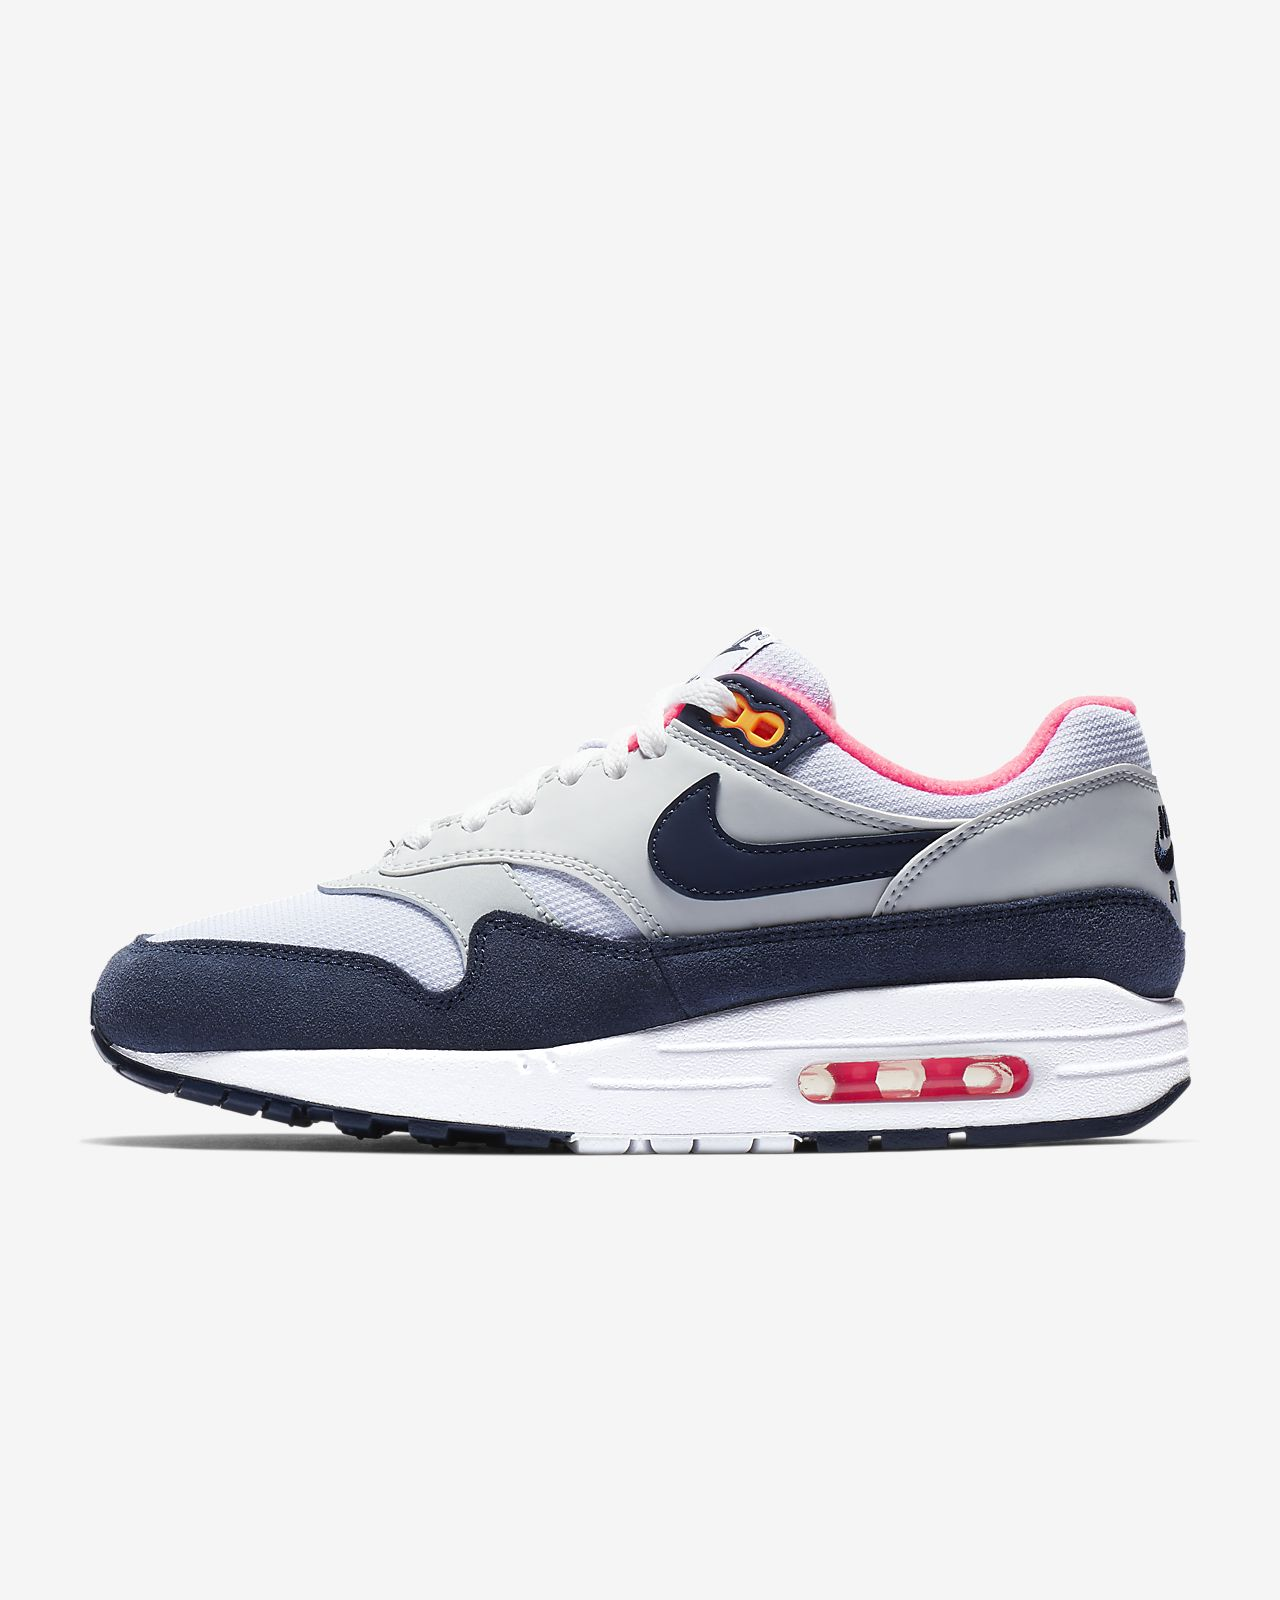 half off 96bb1 7b1b3 ... Nike Air Max 1 Premium Women s Shoe